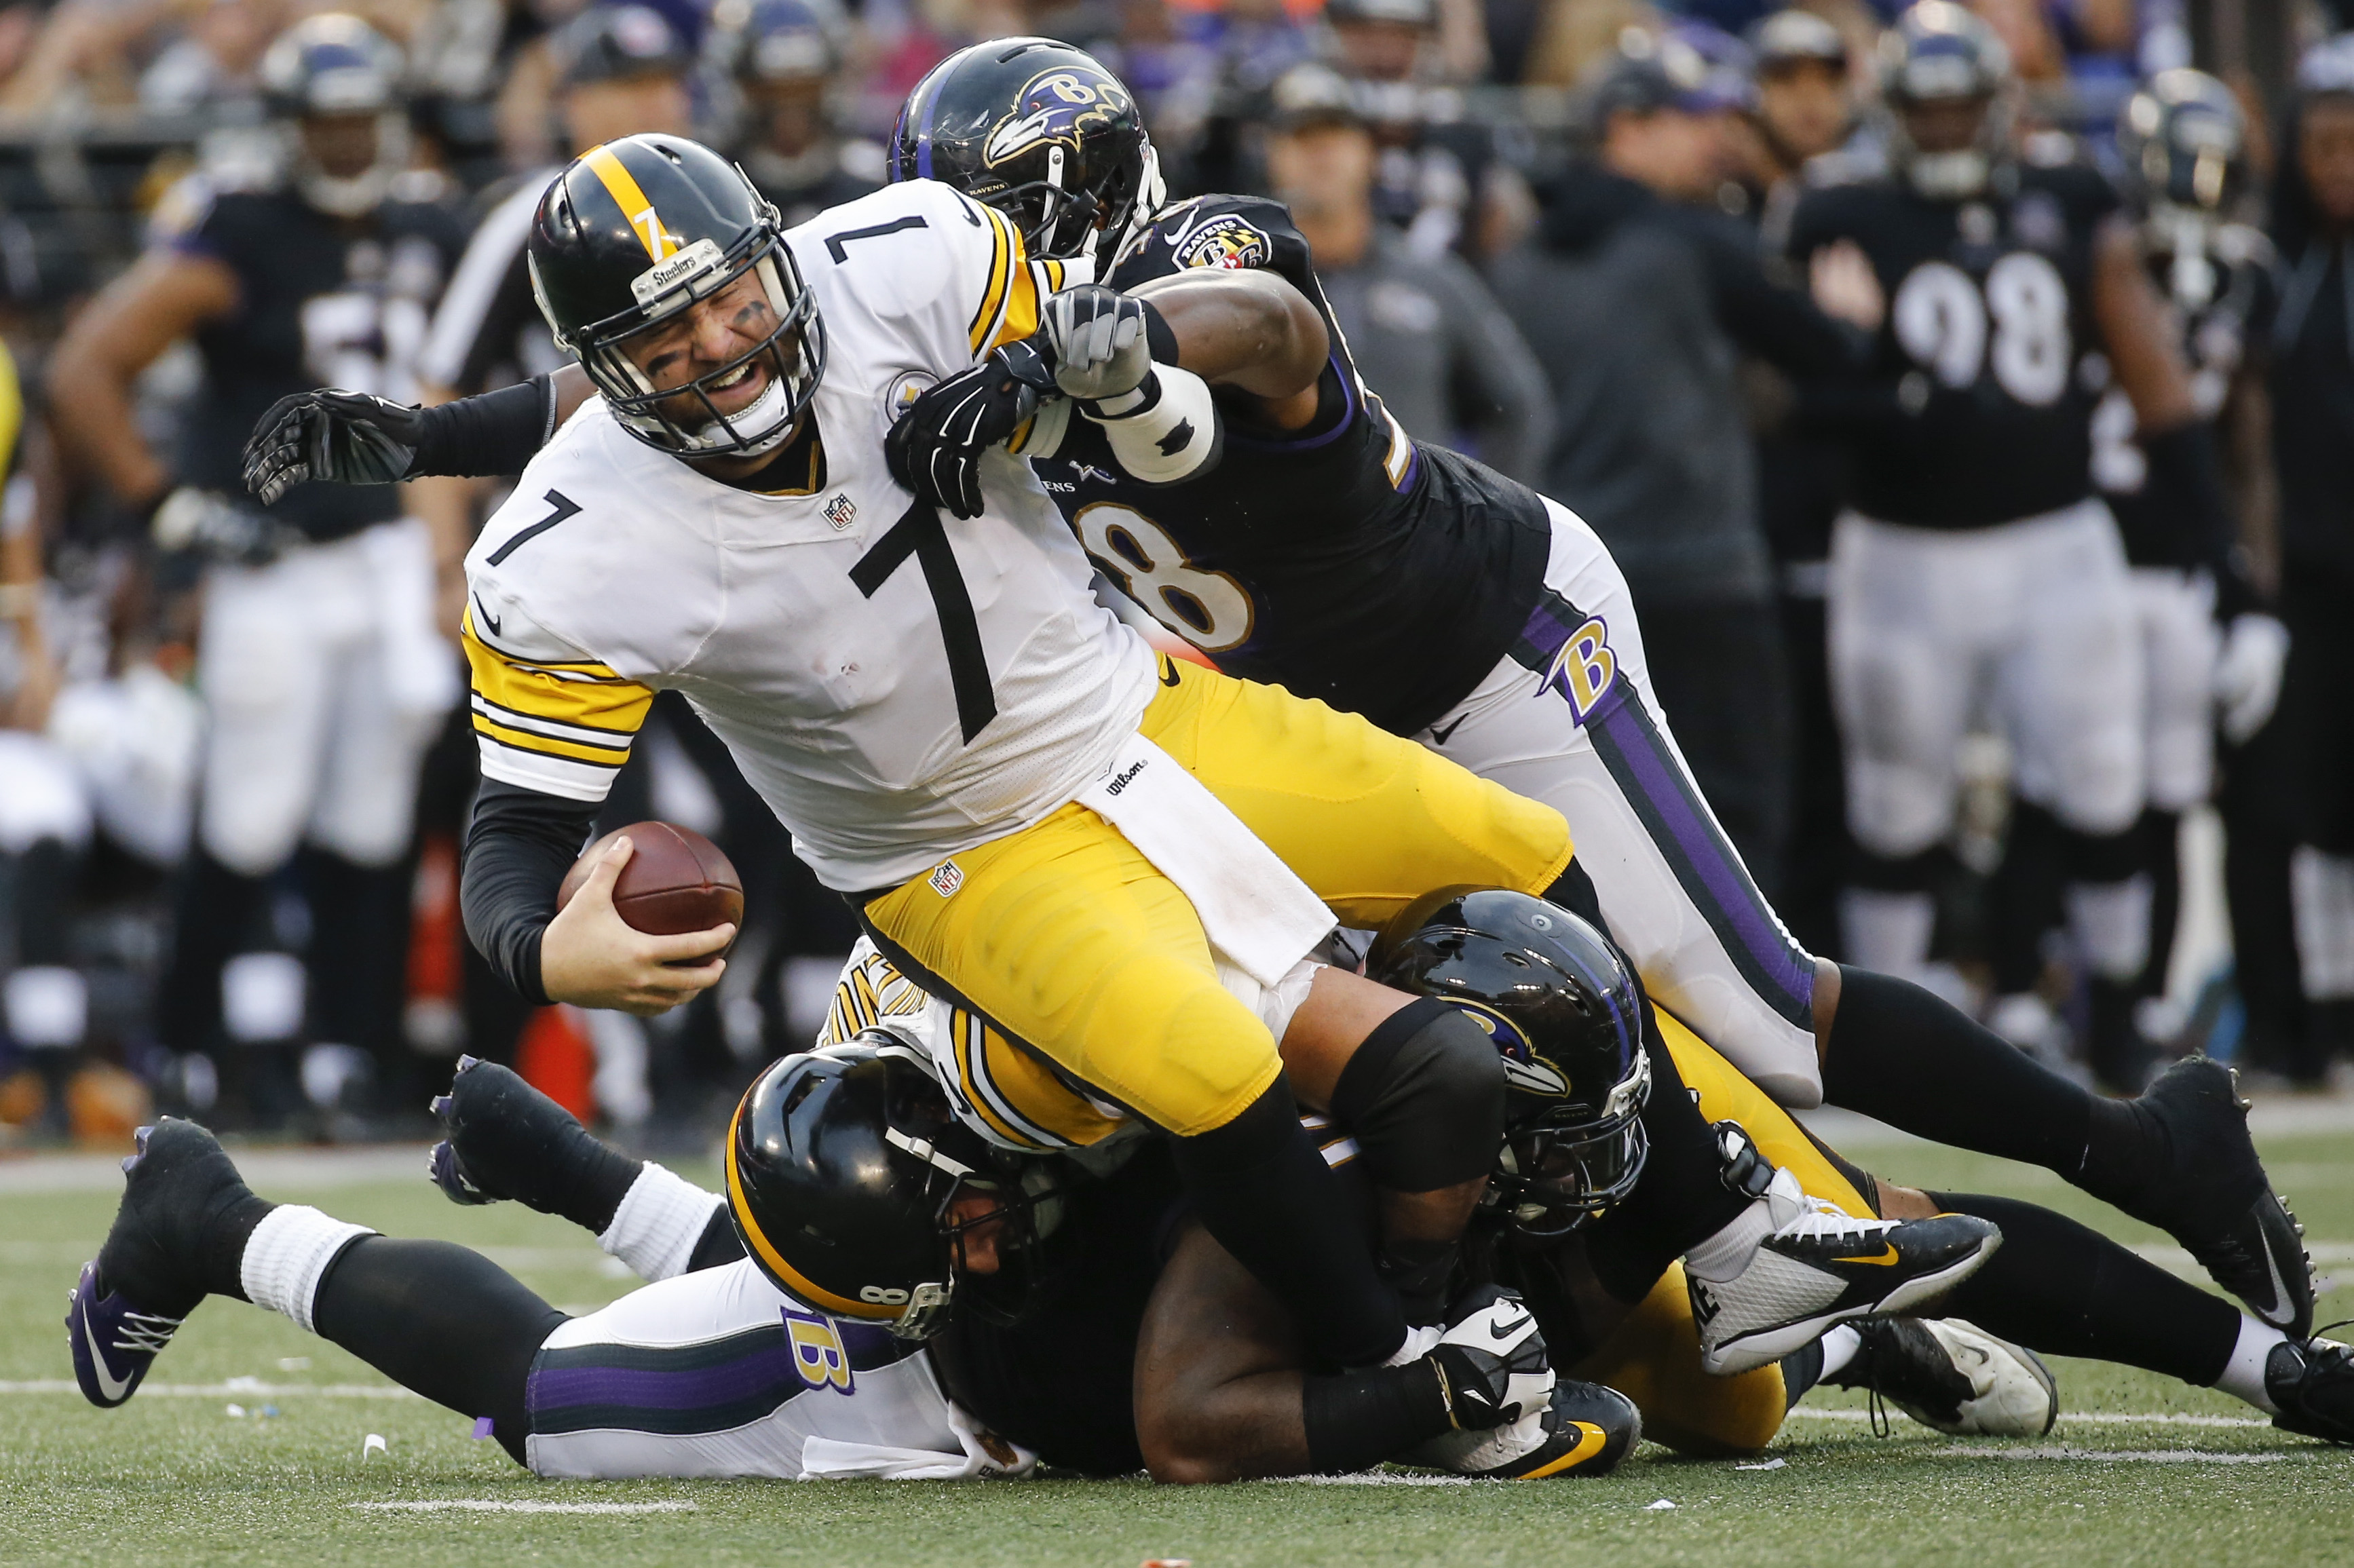 Pittsburgh Steelers quarterback Ben Roethlisberger (7) is sacked by Baltimore Ravens outside linebacker Elvis Dumervil (58) during the second half of an NFL football game in Baltimore, Sunday, Dec. 27, 2015. The Ravens defeated the Steelers 20-17. (AP Pho